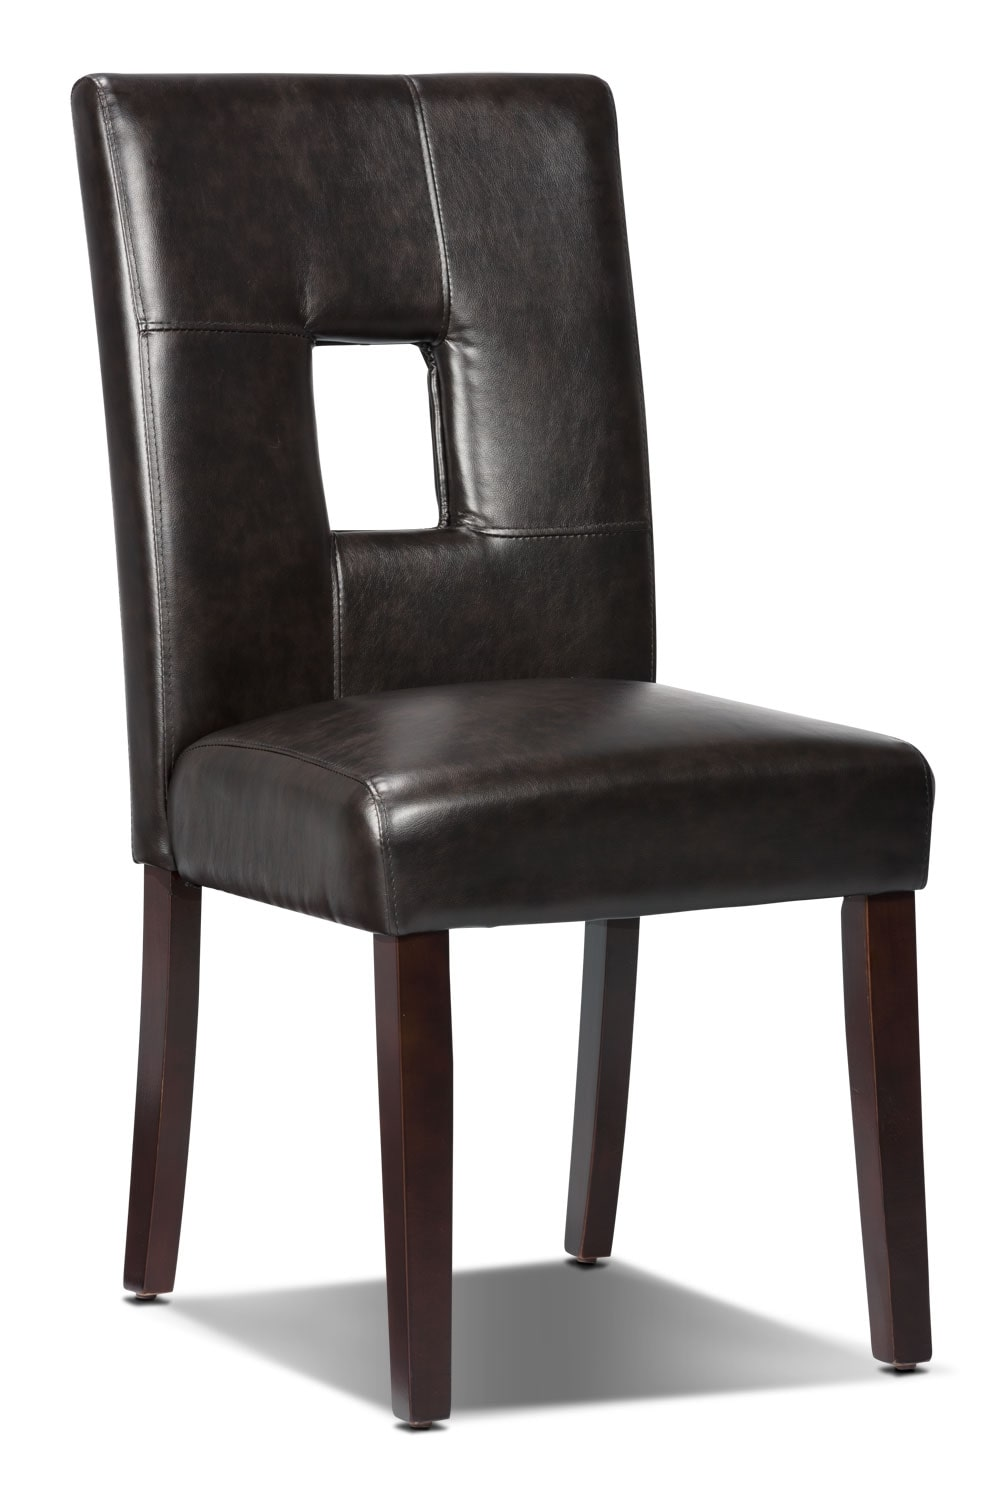 Mckena faux leather dining chair brown the brick for Faux leather dining chairs